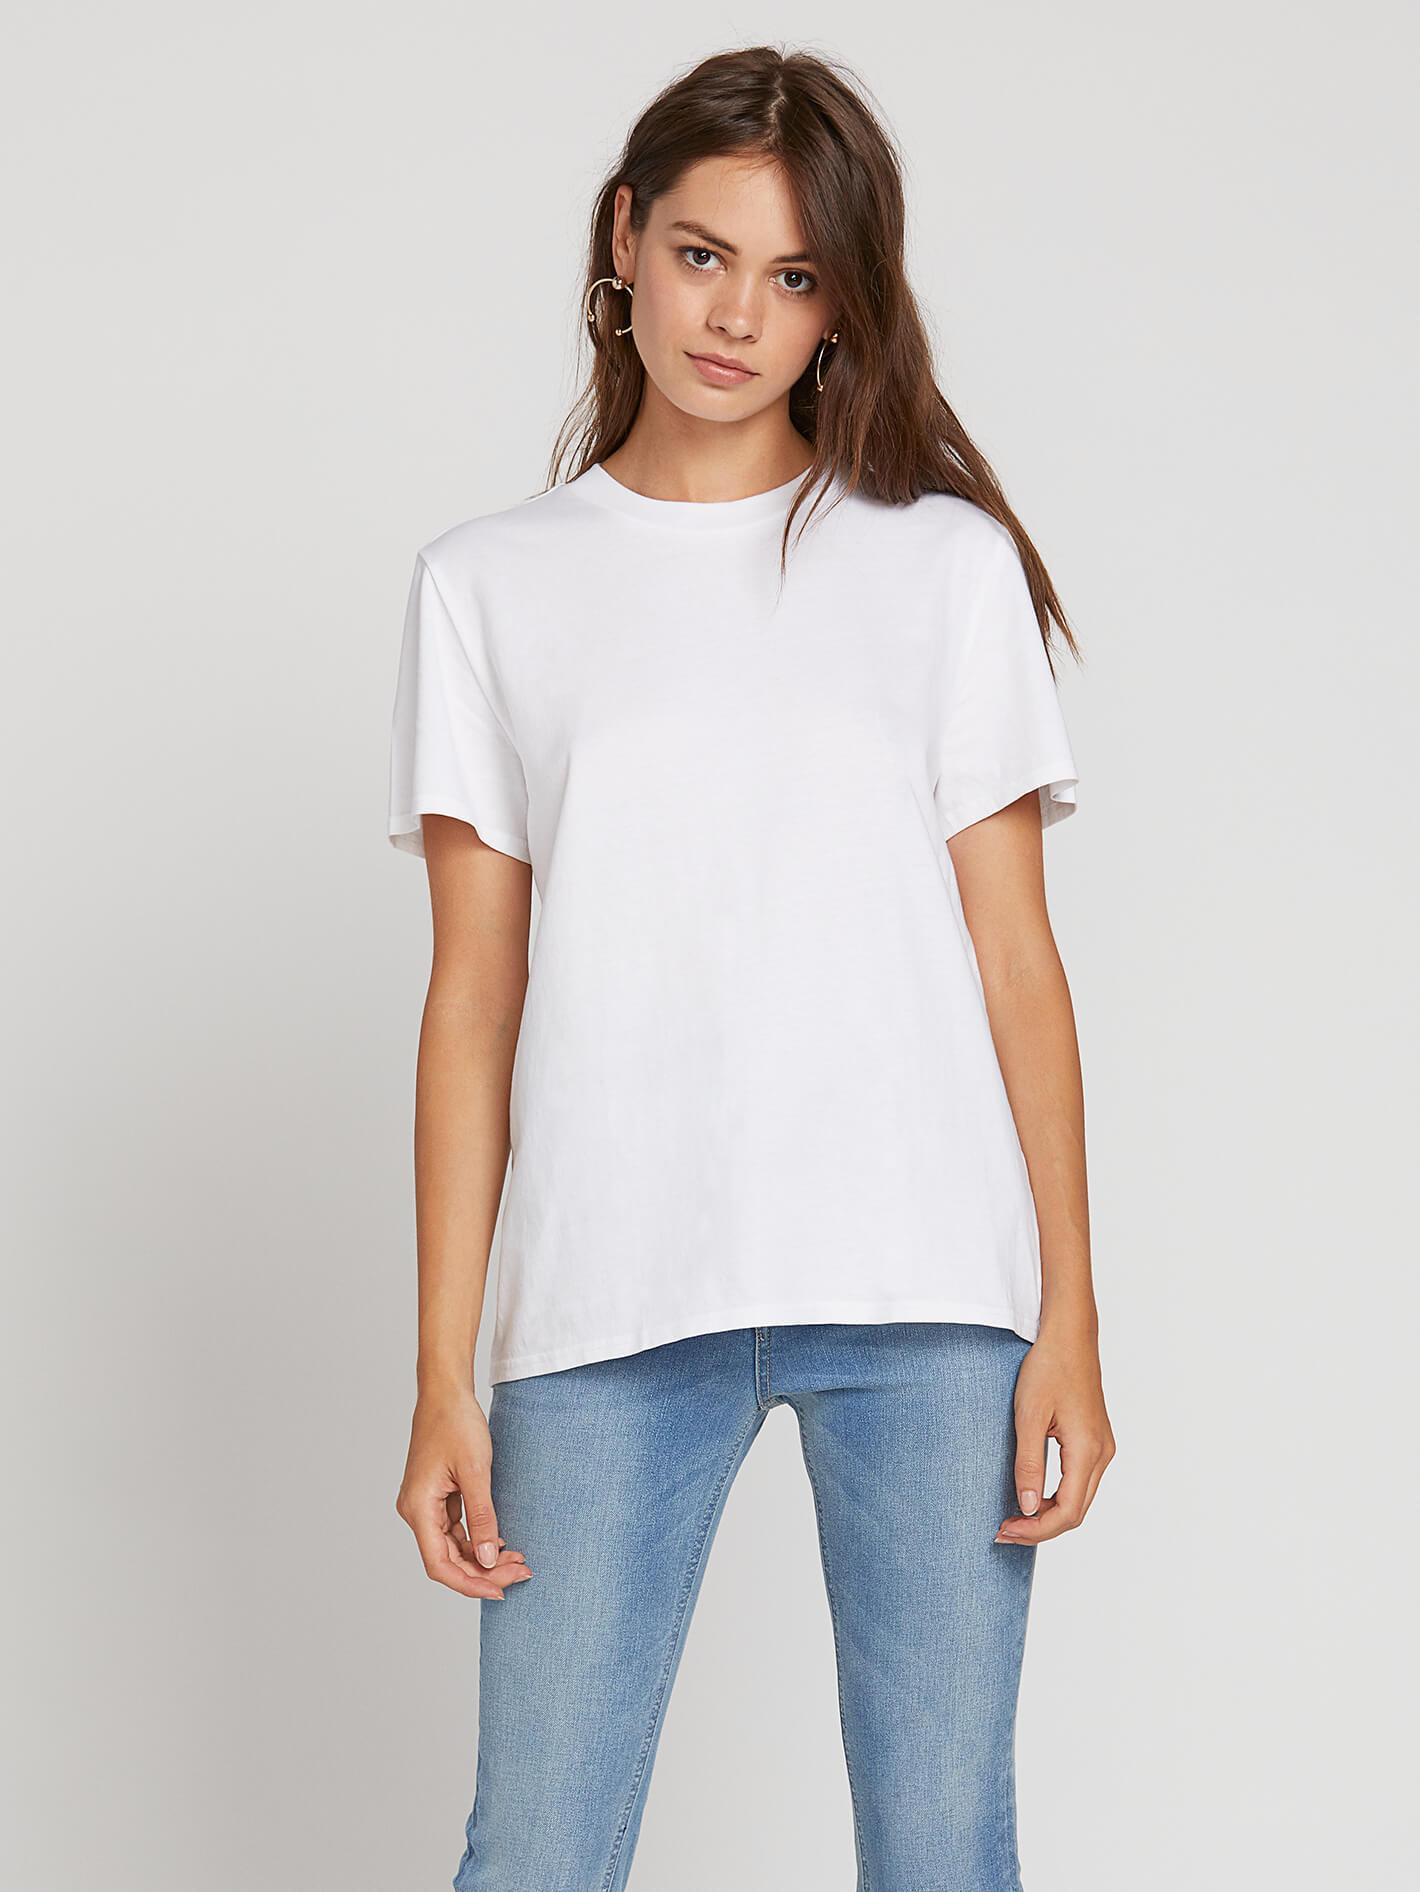 Volcom One of Each BF Women's S/S Tee